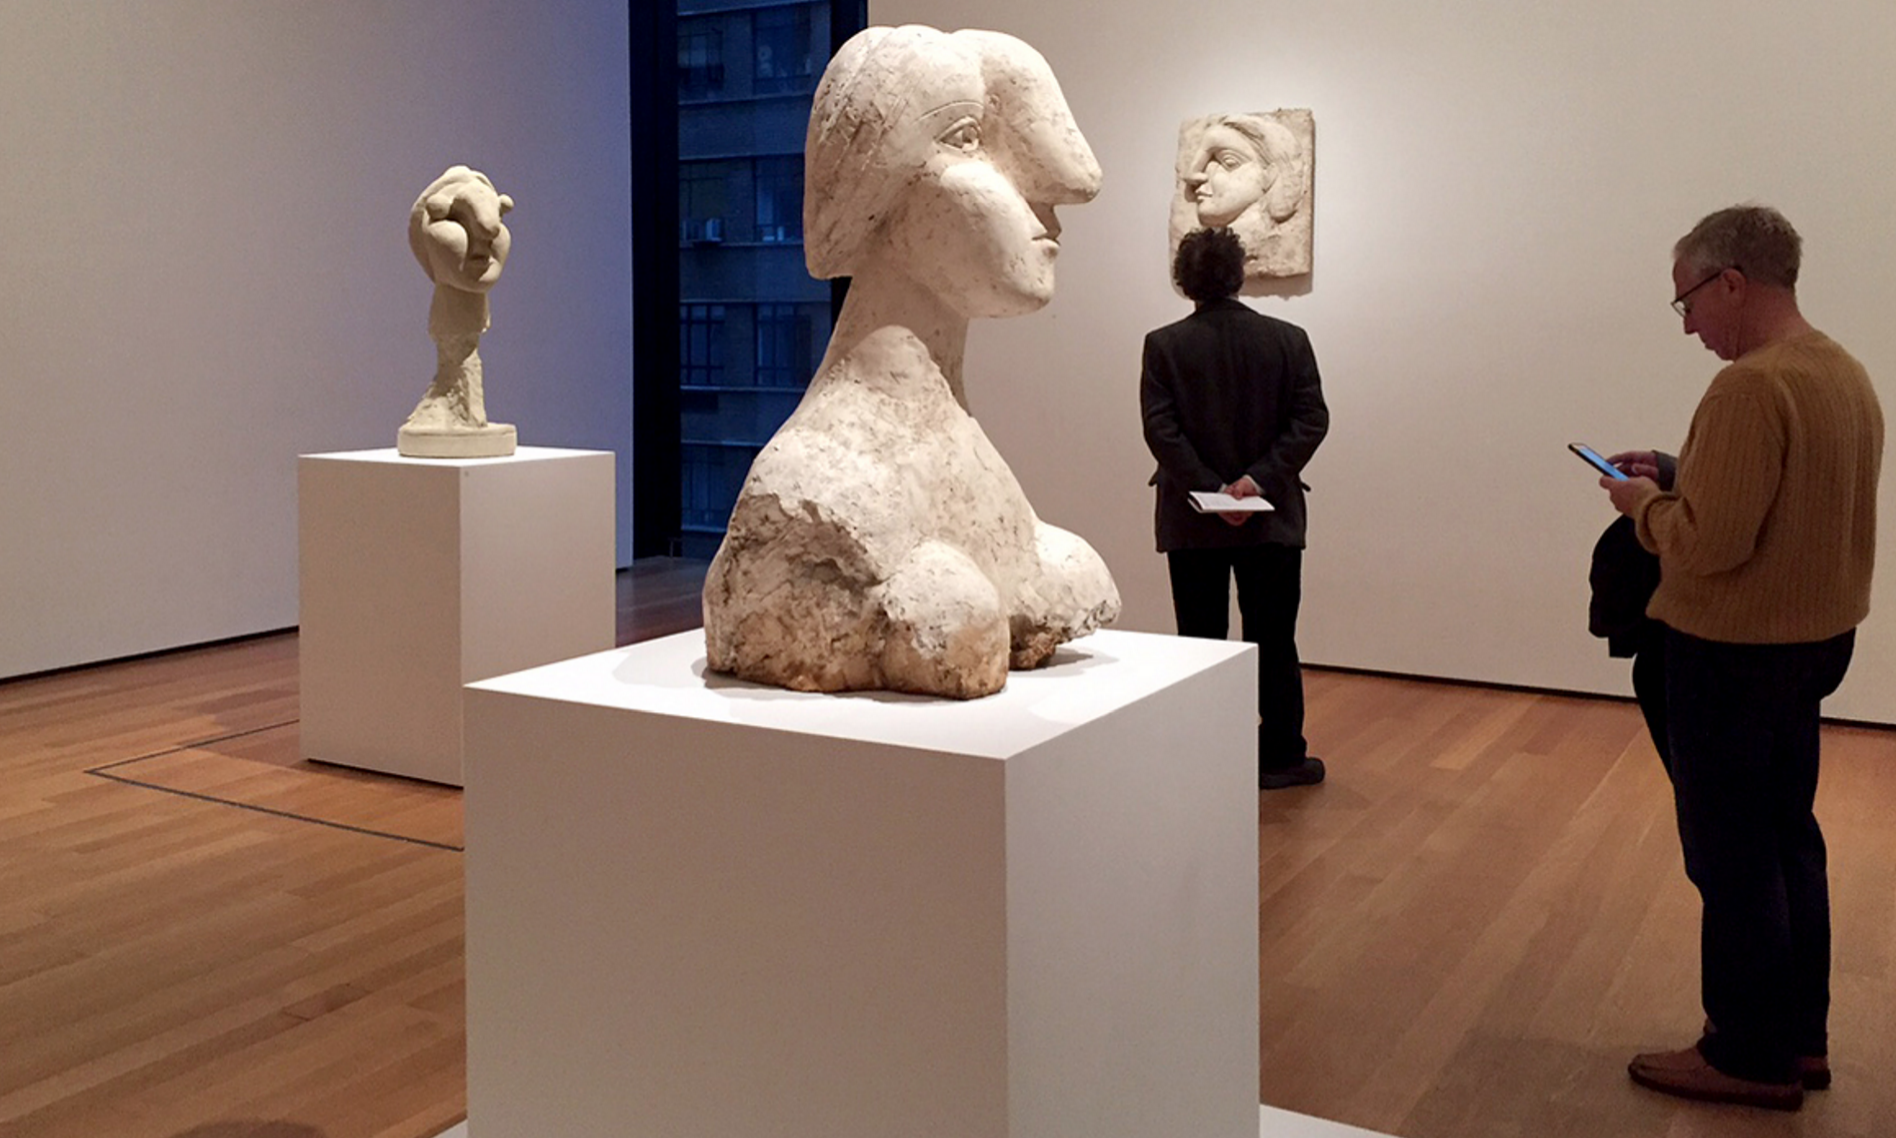 picasso's sought after bust of a woman appears to have two owners